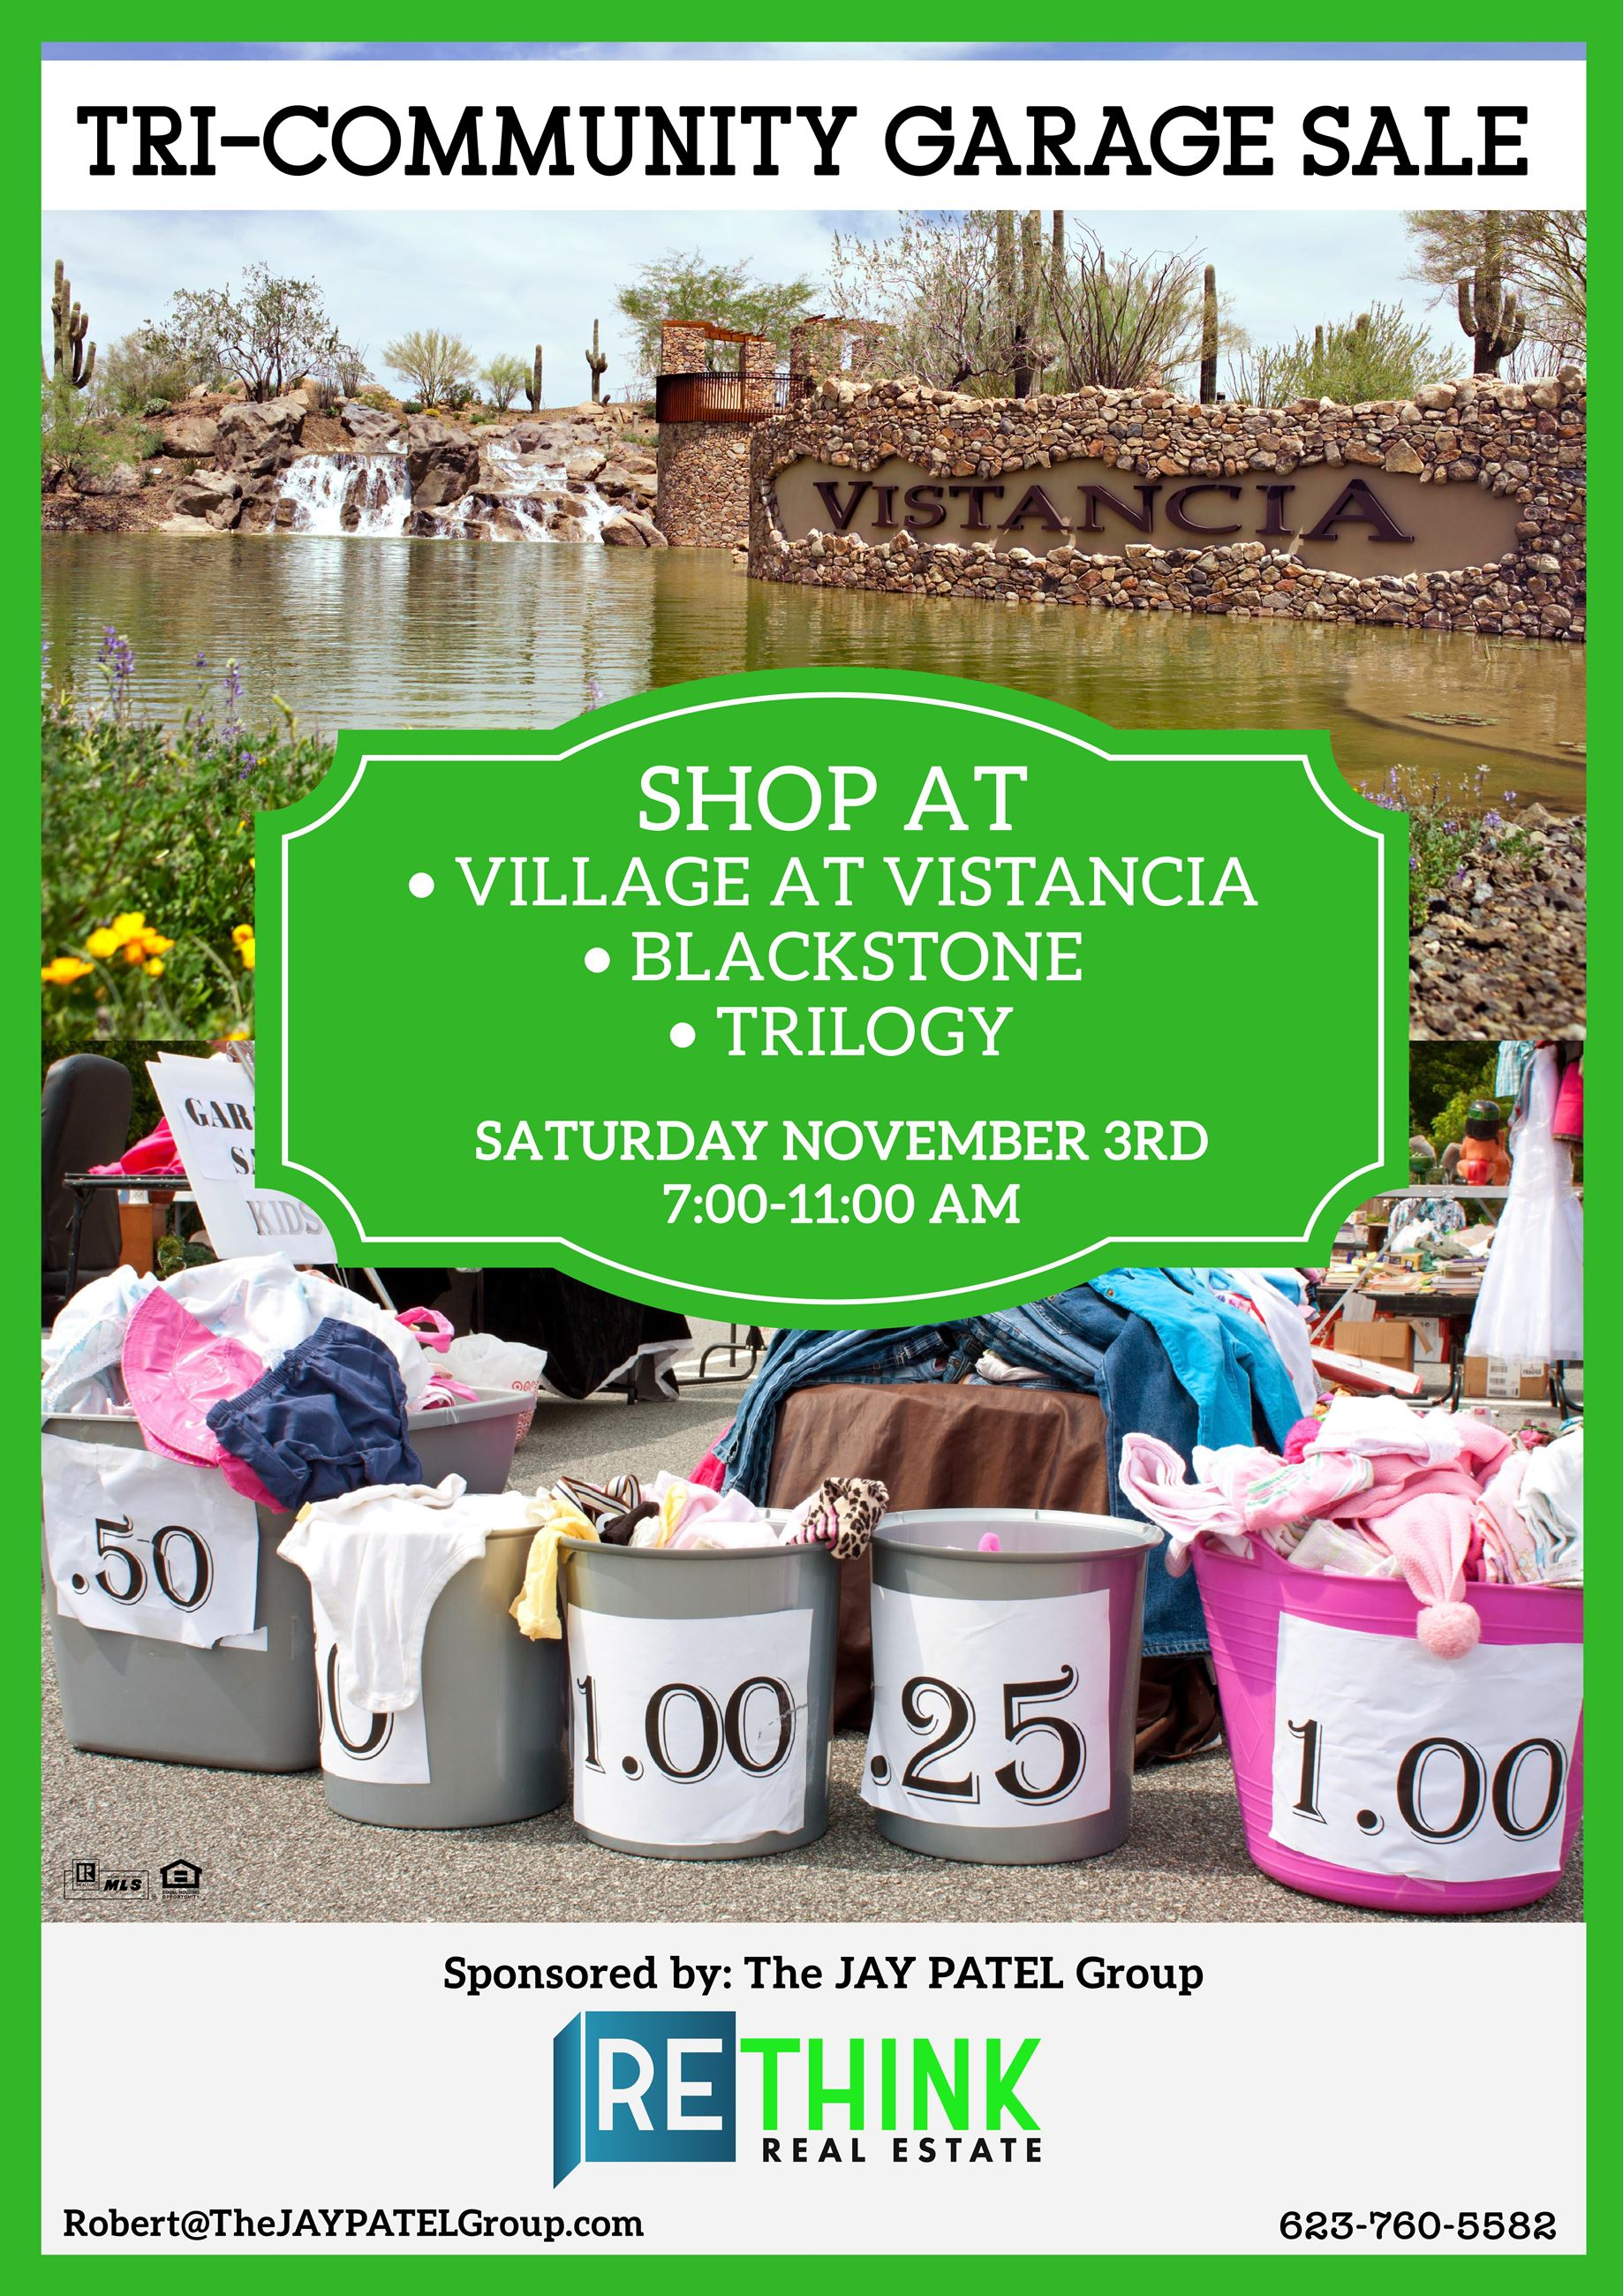 Vistancia Garage Sale Flyer 11-3-18 - Final